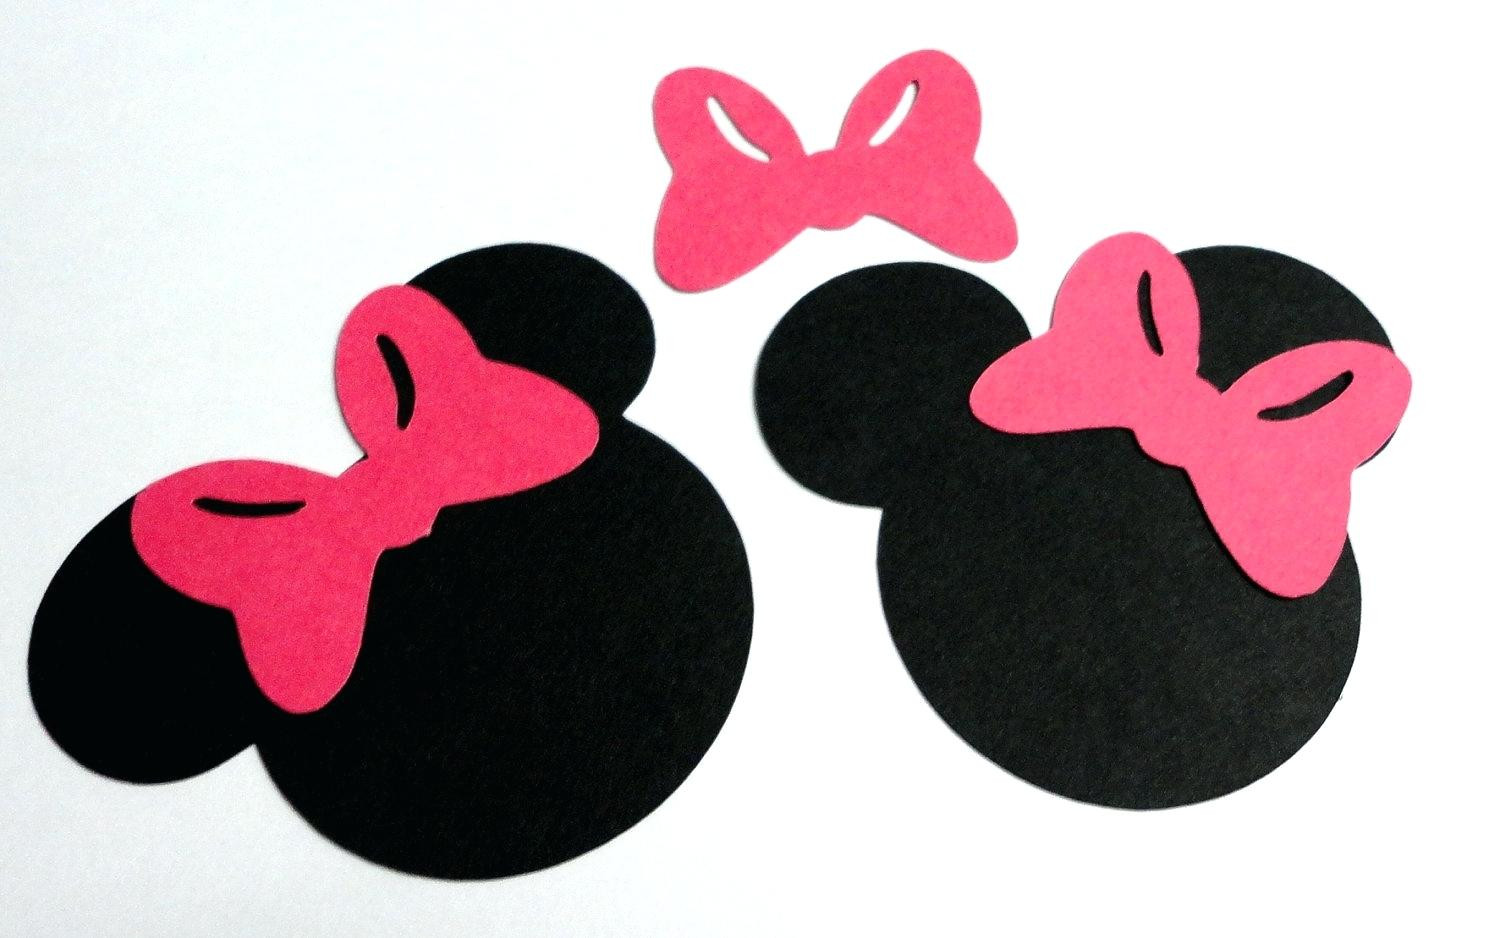 1500x938 Minnie Mouse Template Full See Rclxelxri For Mickey Head